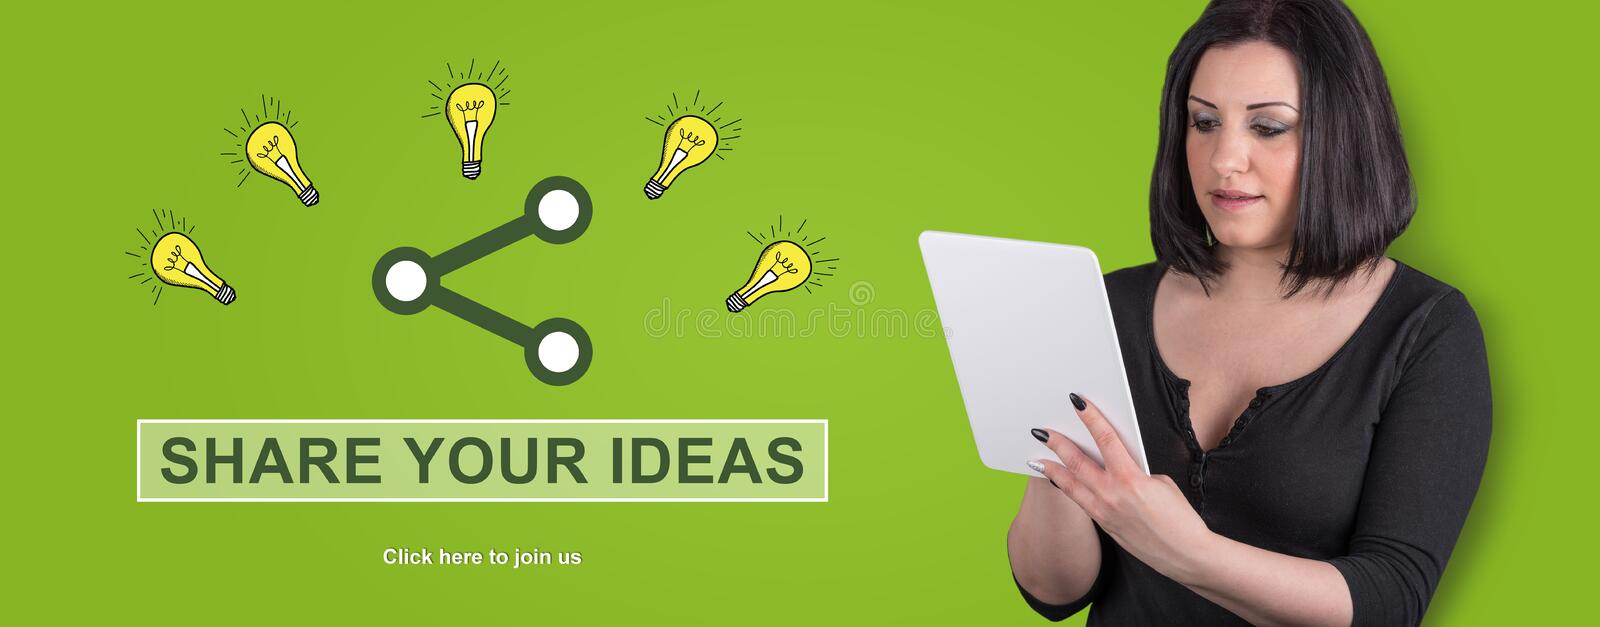 Concept of ideas sharing stock image